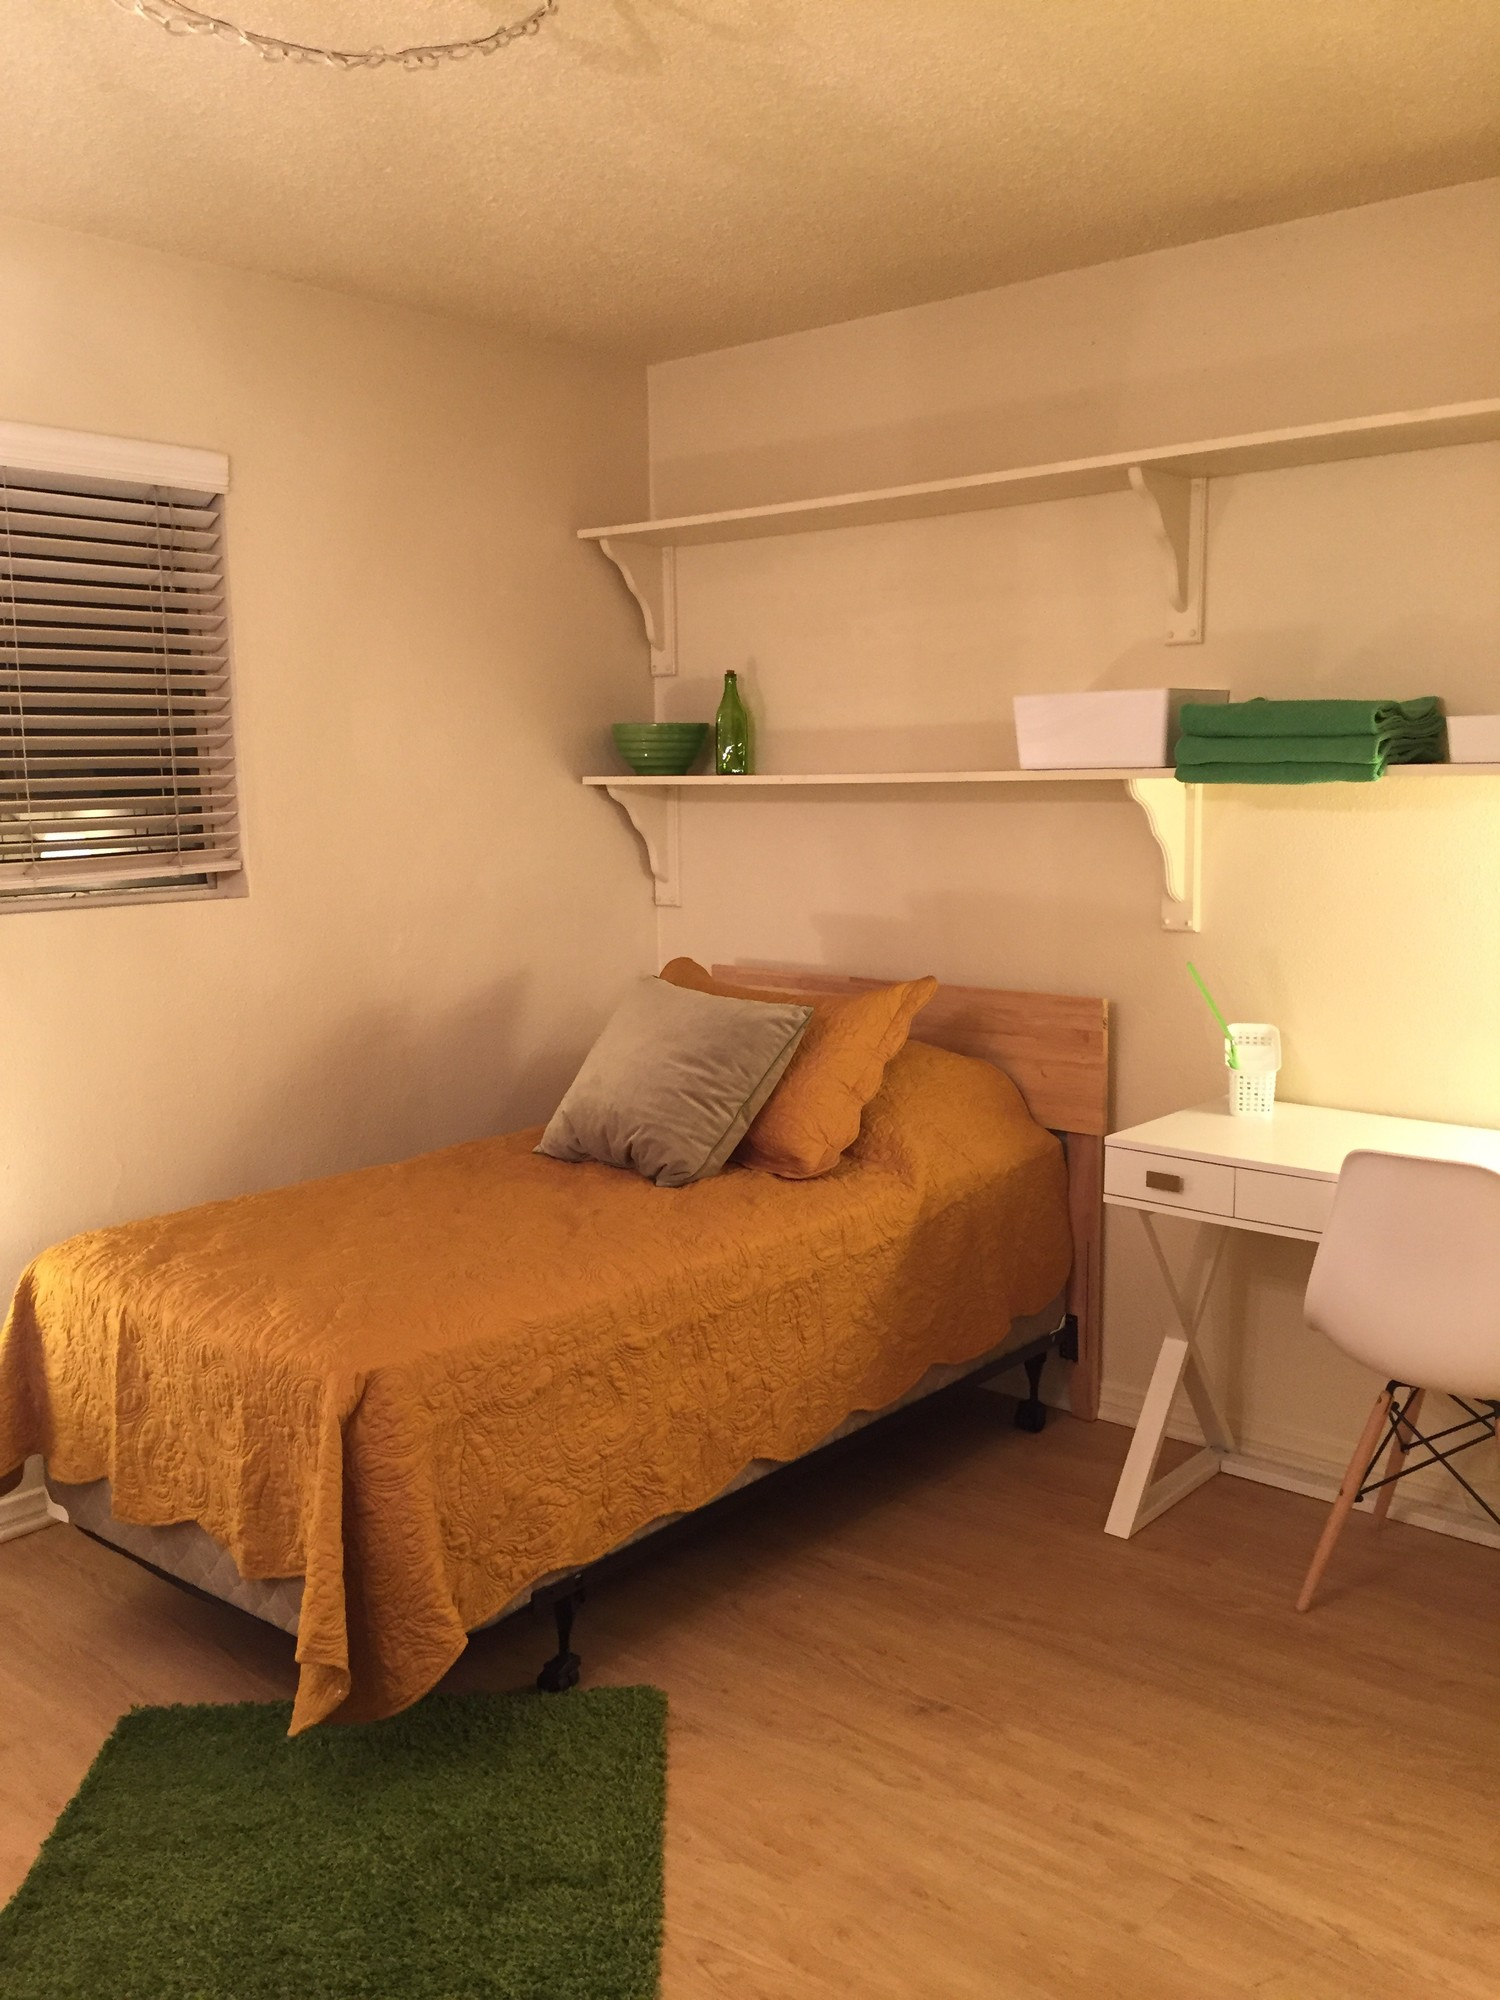 Clean, furnished, fun homestay.